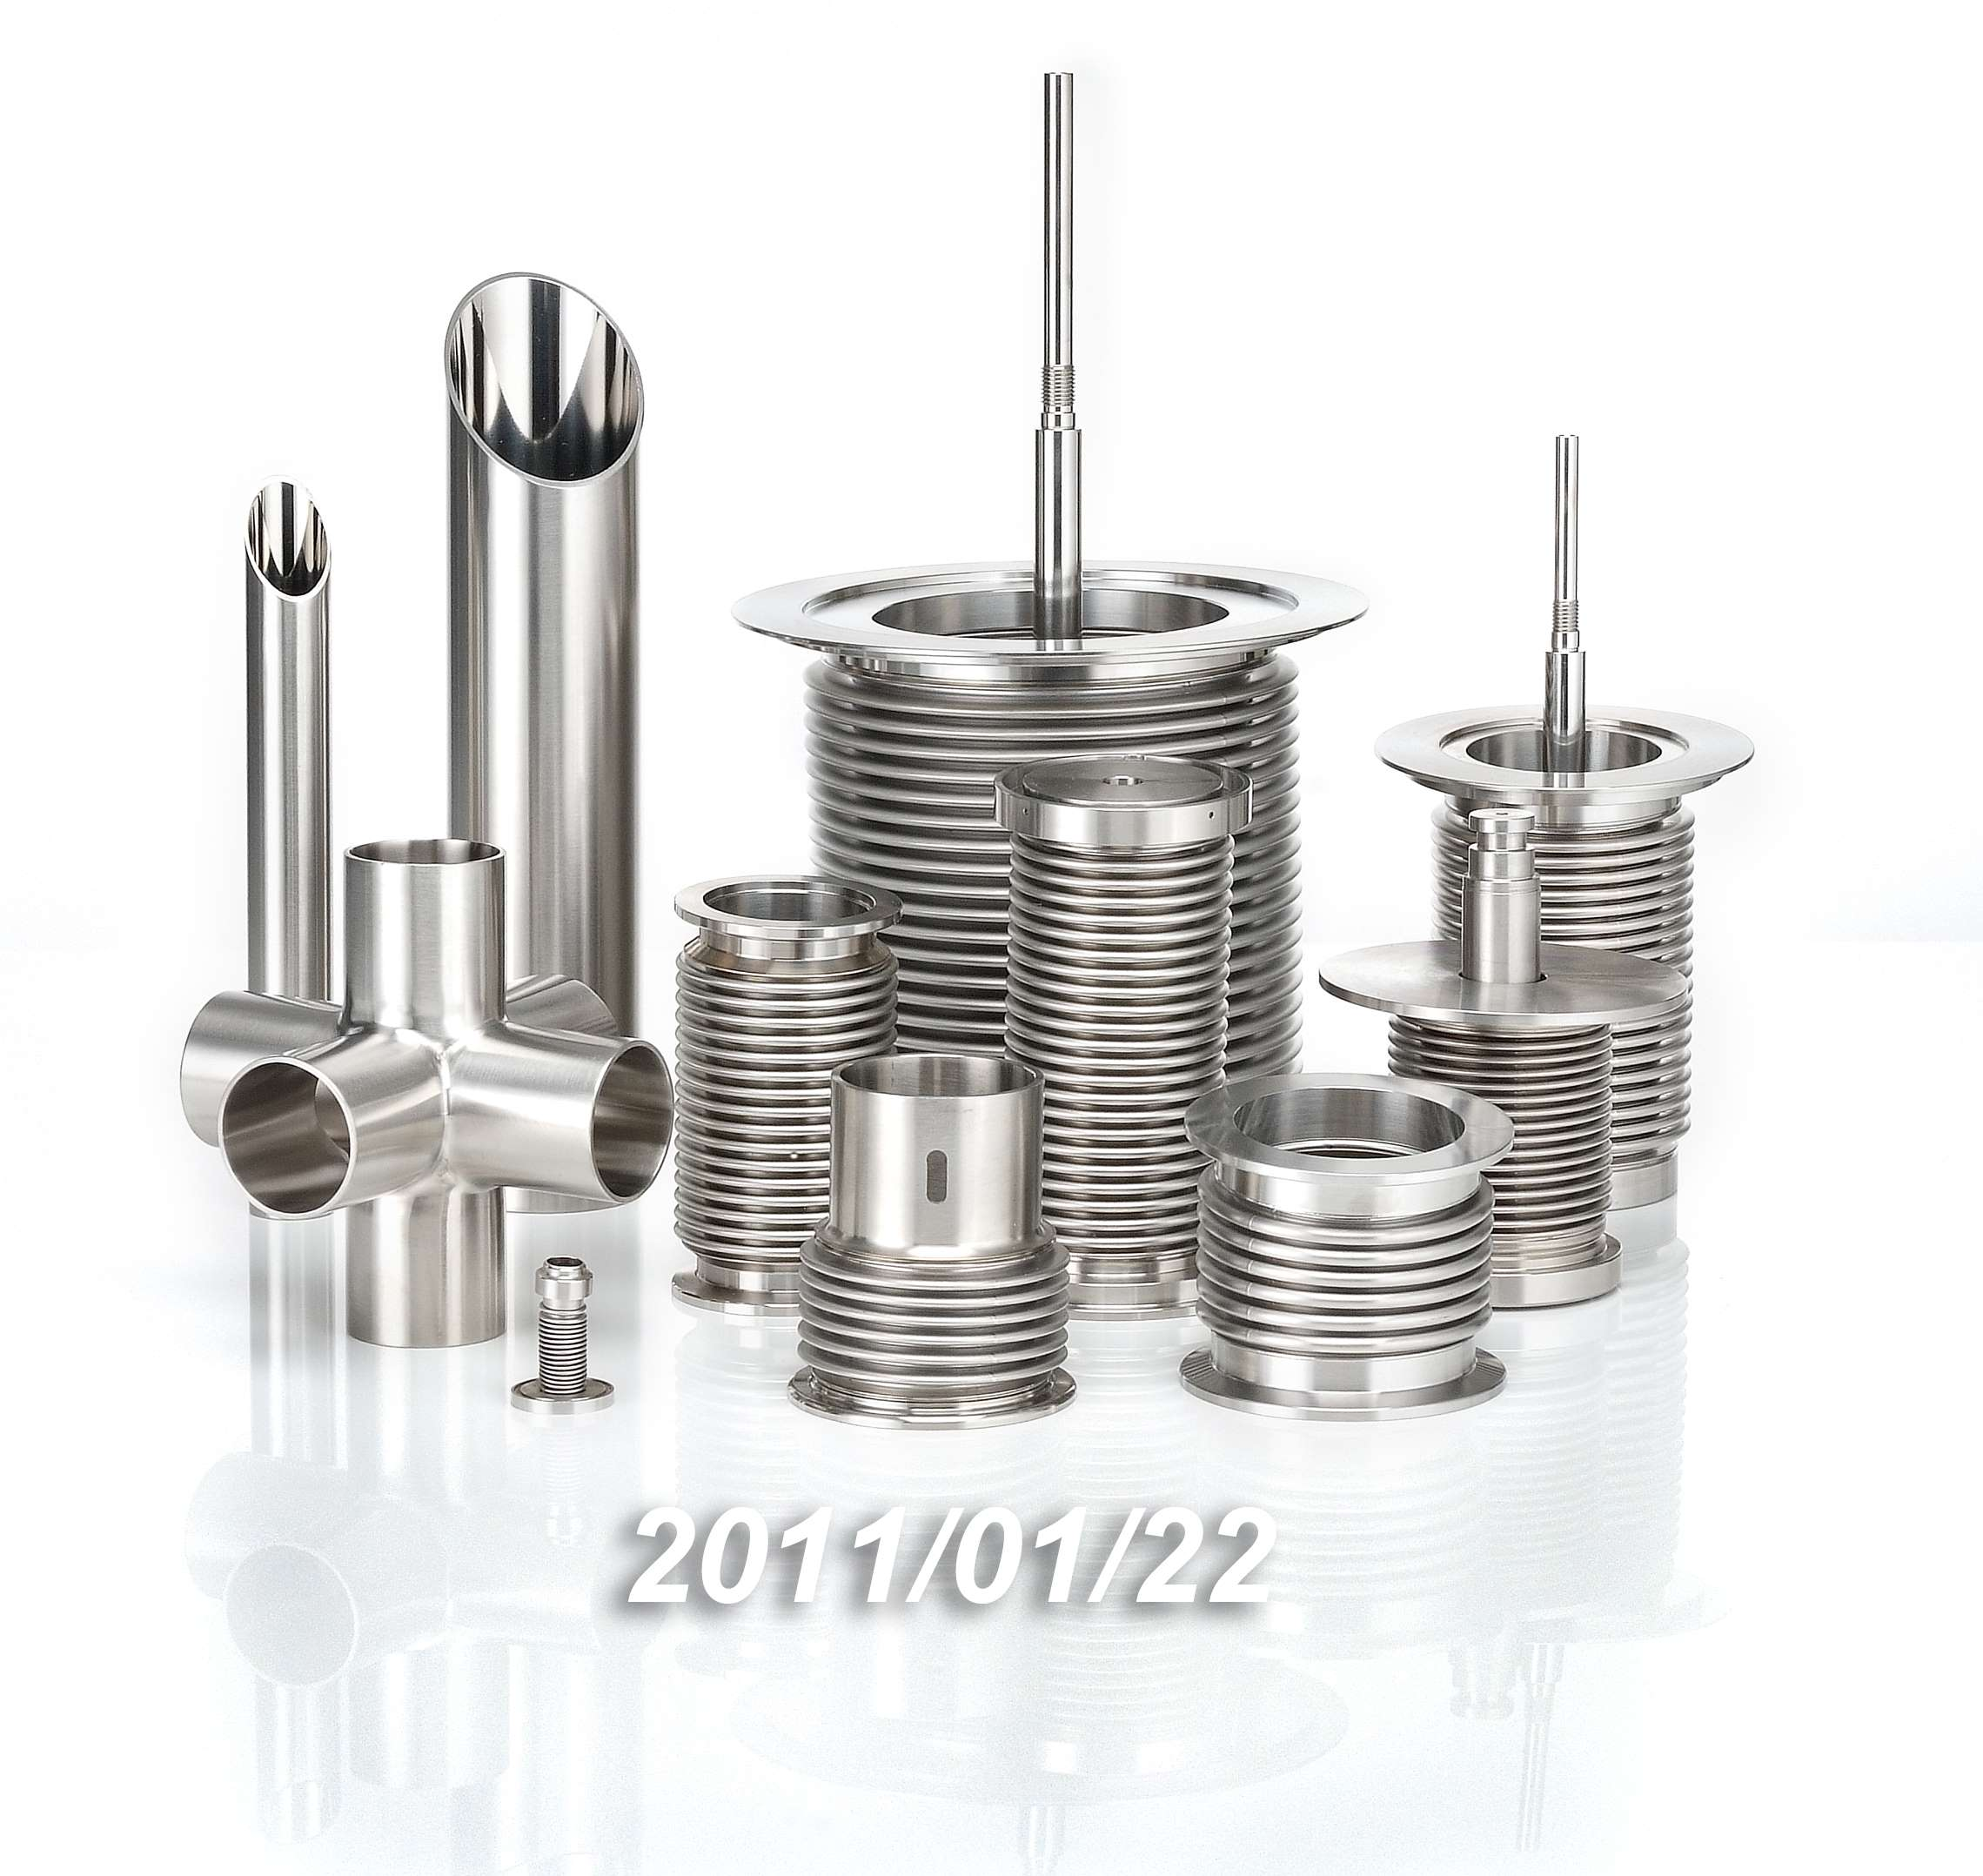 Qualified Connector Manufacturer and Supplier